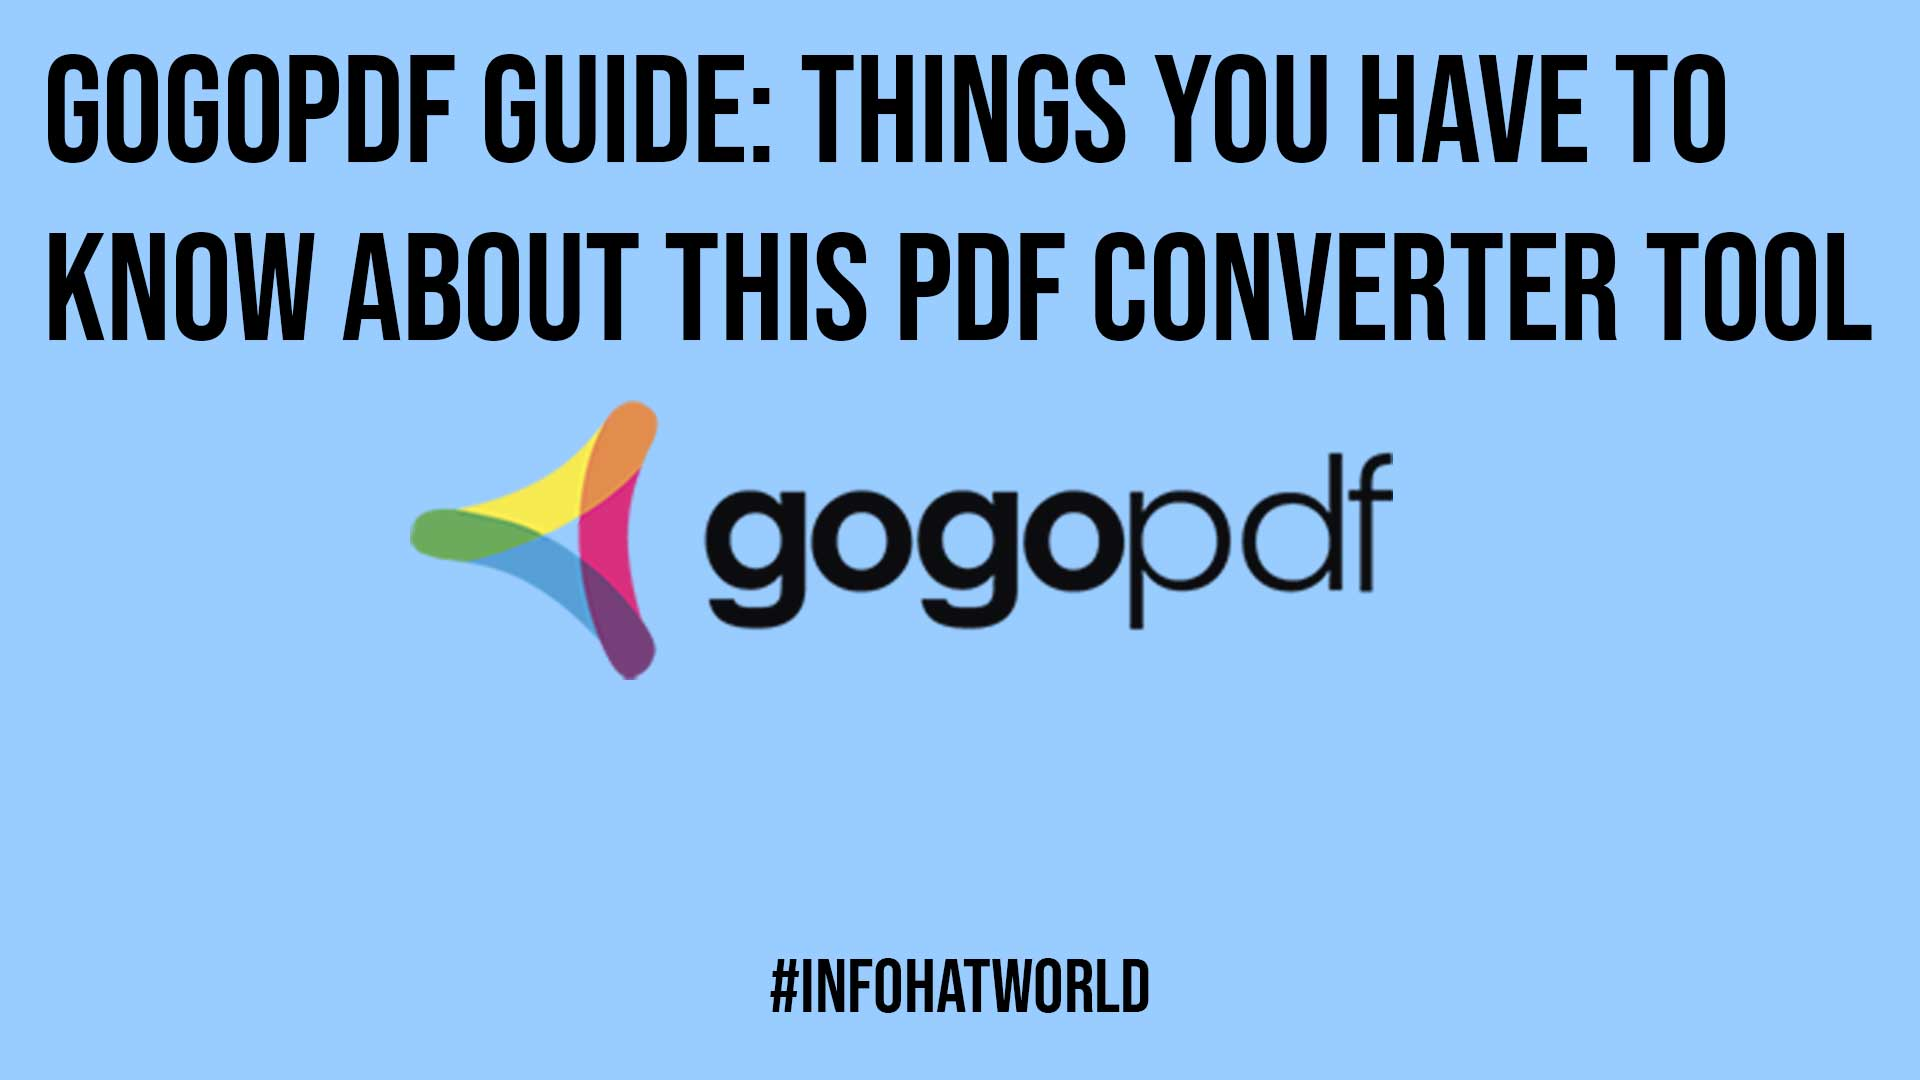 GogoPDF Guide Things You Have To Know About This PDF Converter Tool